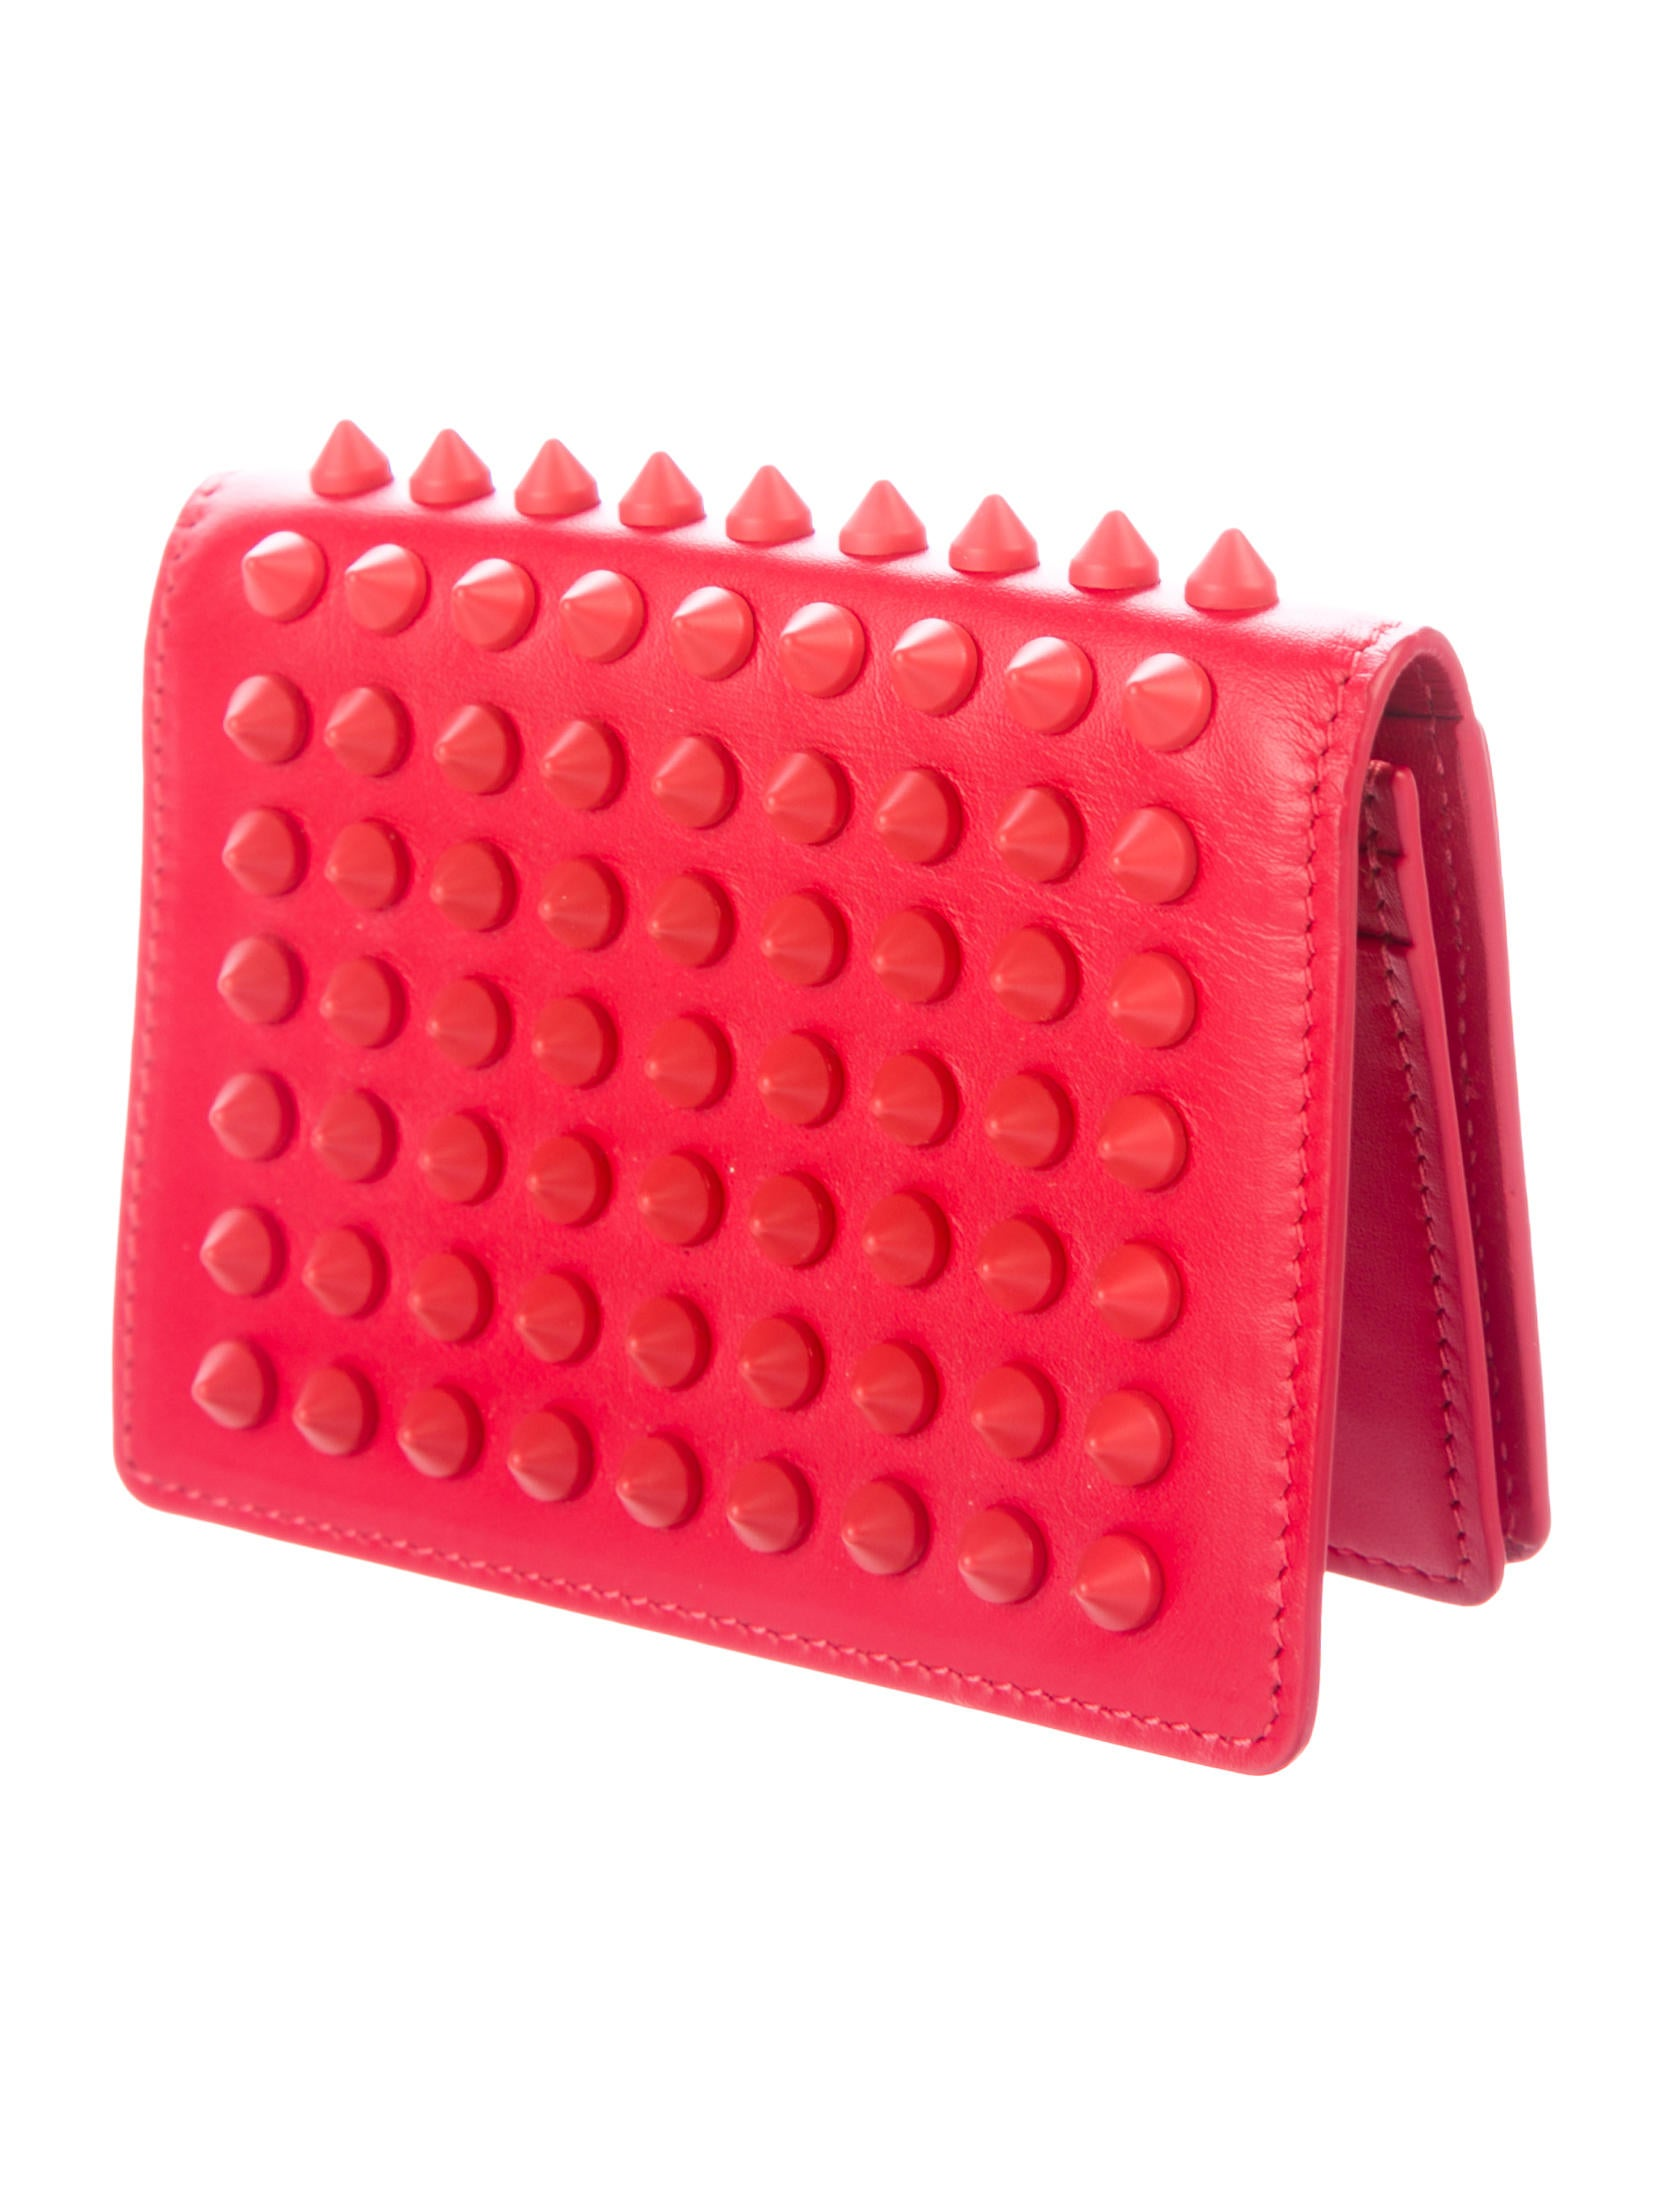 Christian Louboutin Paros Spikes Business Cardholder - Accessories ...